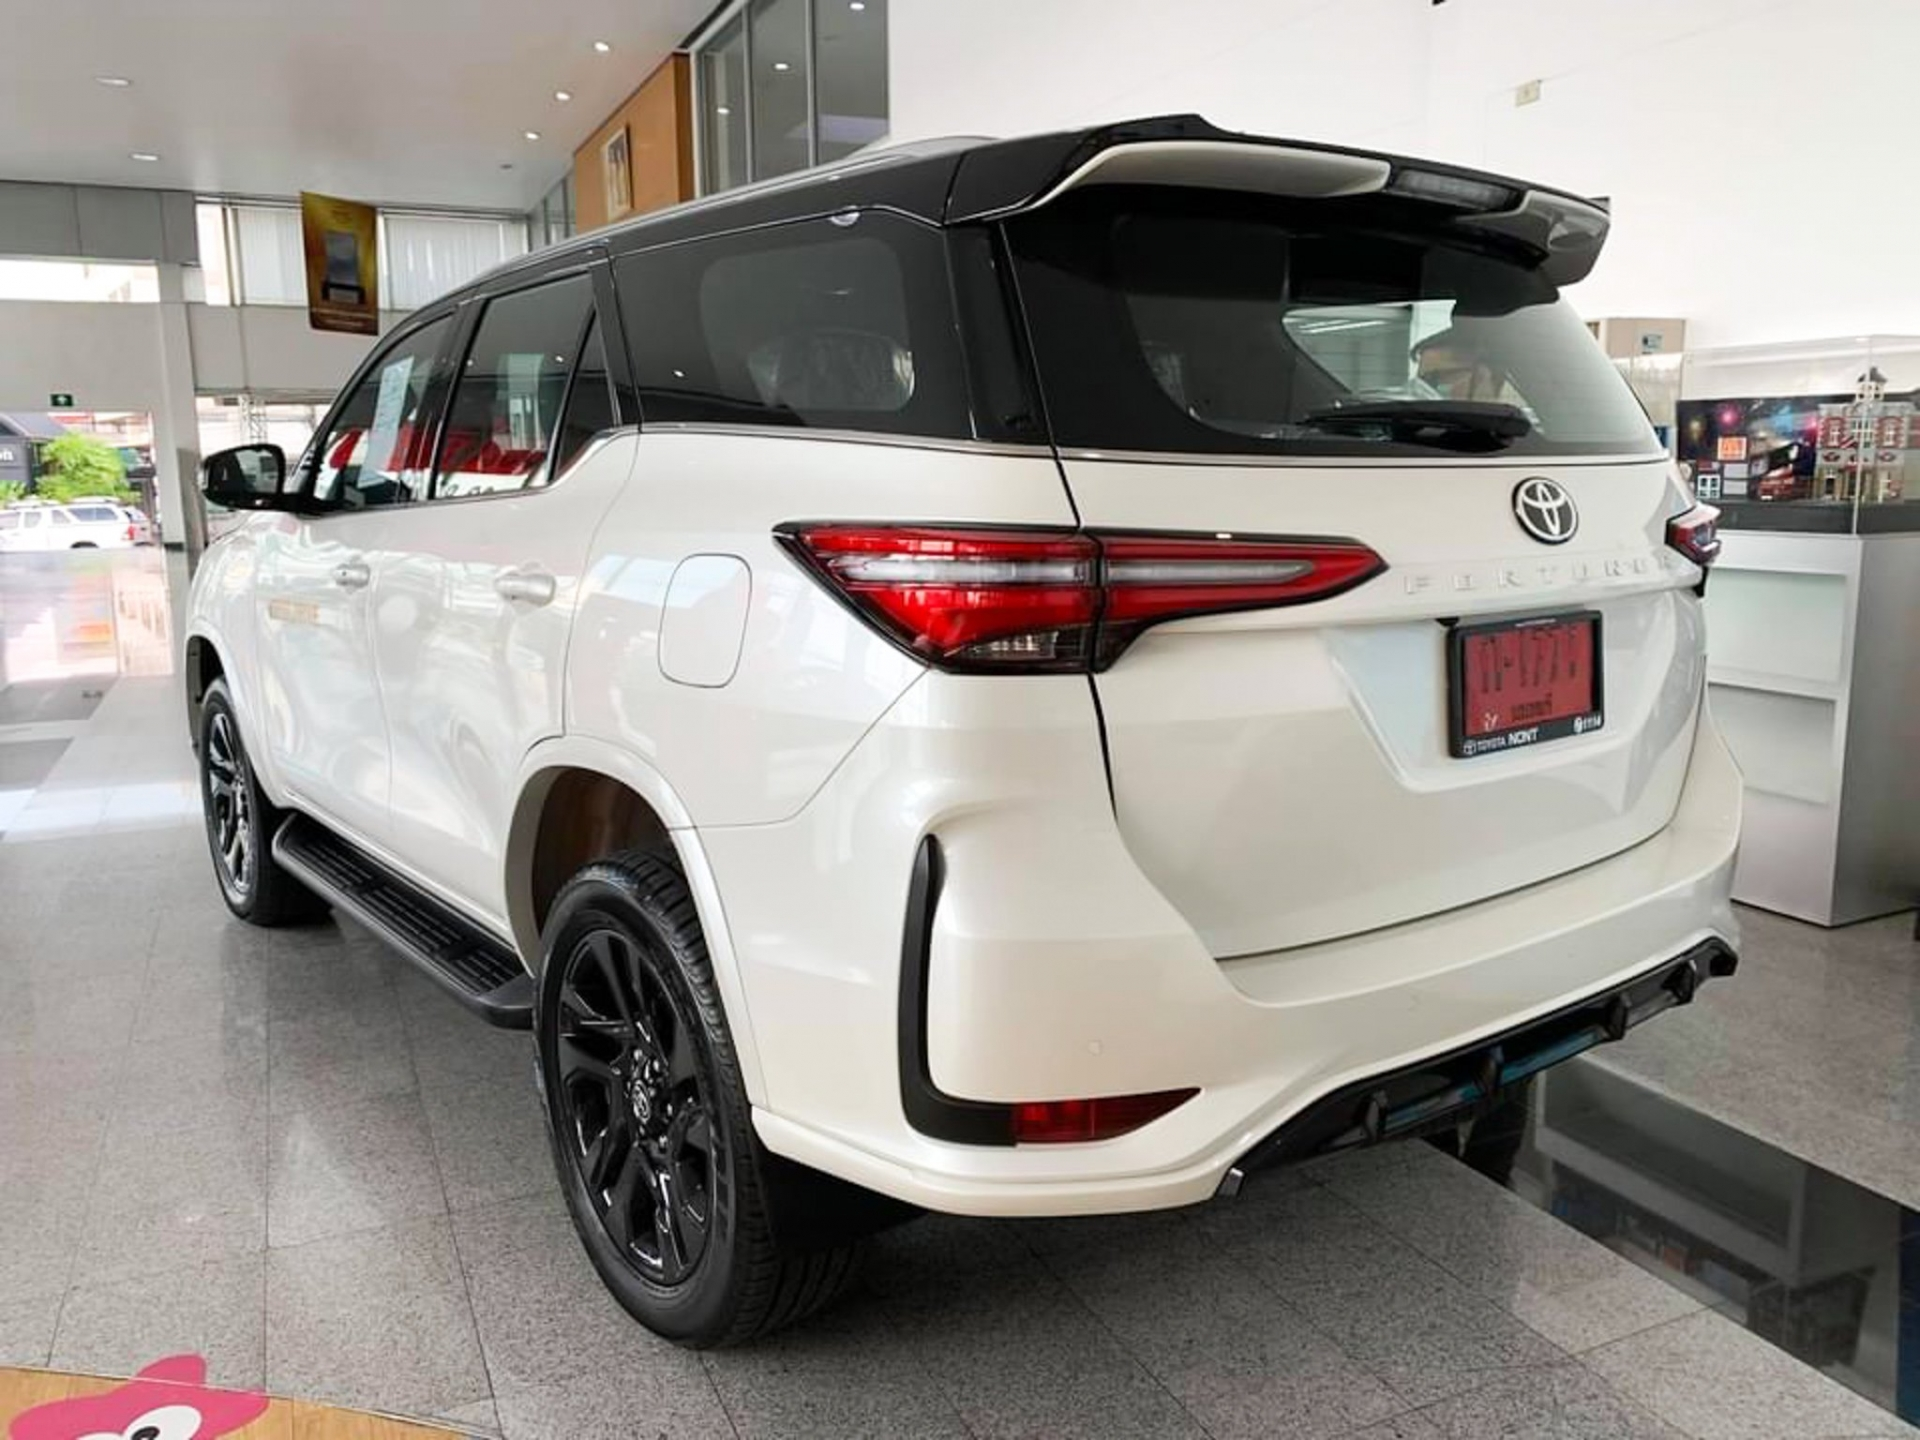 Preview Toyota Fortuner GR Sport 2022 priced at 1.3 billion at a Thai dealer, coming soon in Vietnam 5